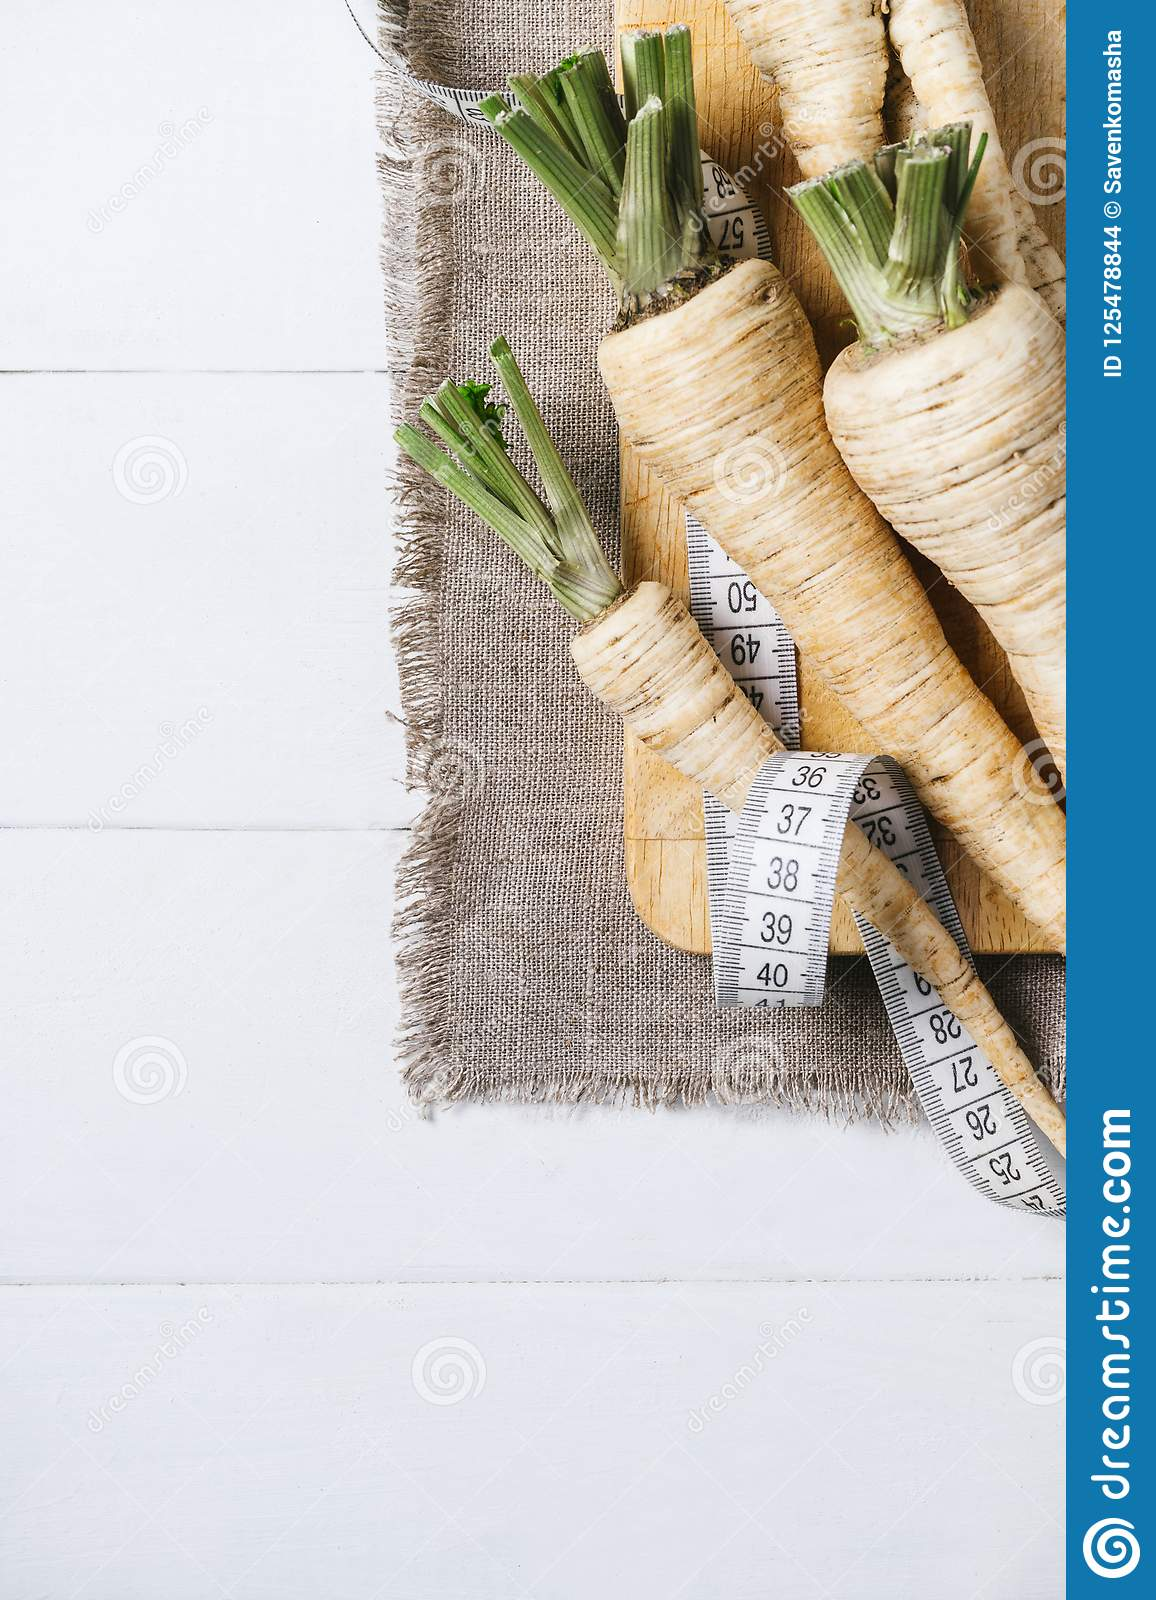 Parsley Root With A Measuring Tape And Tomatoes On Cutting Board On A White Background Of The Old Wooden Boards Vintage Top View V Stock Photo Image Of Display Meter 125478844